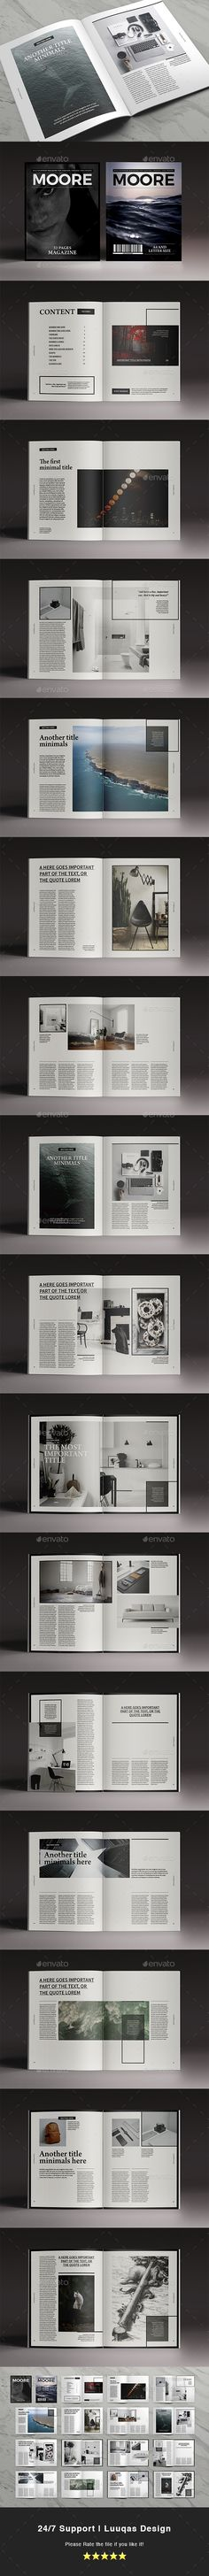 Moore Magazine Template InDesign INDD. Download here: https://graphicriver.net/item/moore-magazine-indesign-template/17230373?ref=ksioks